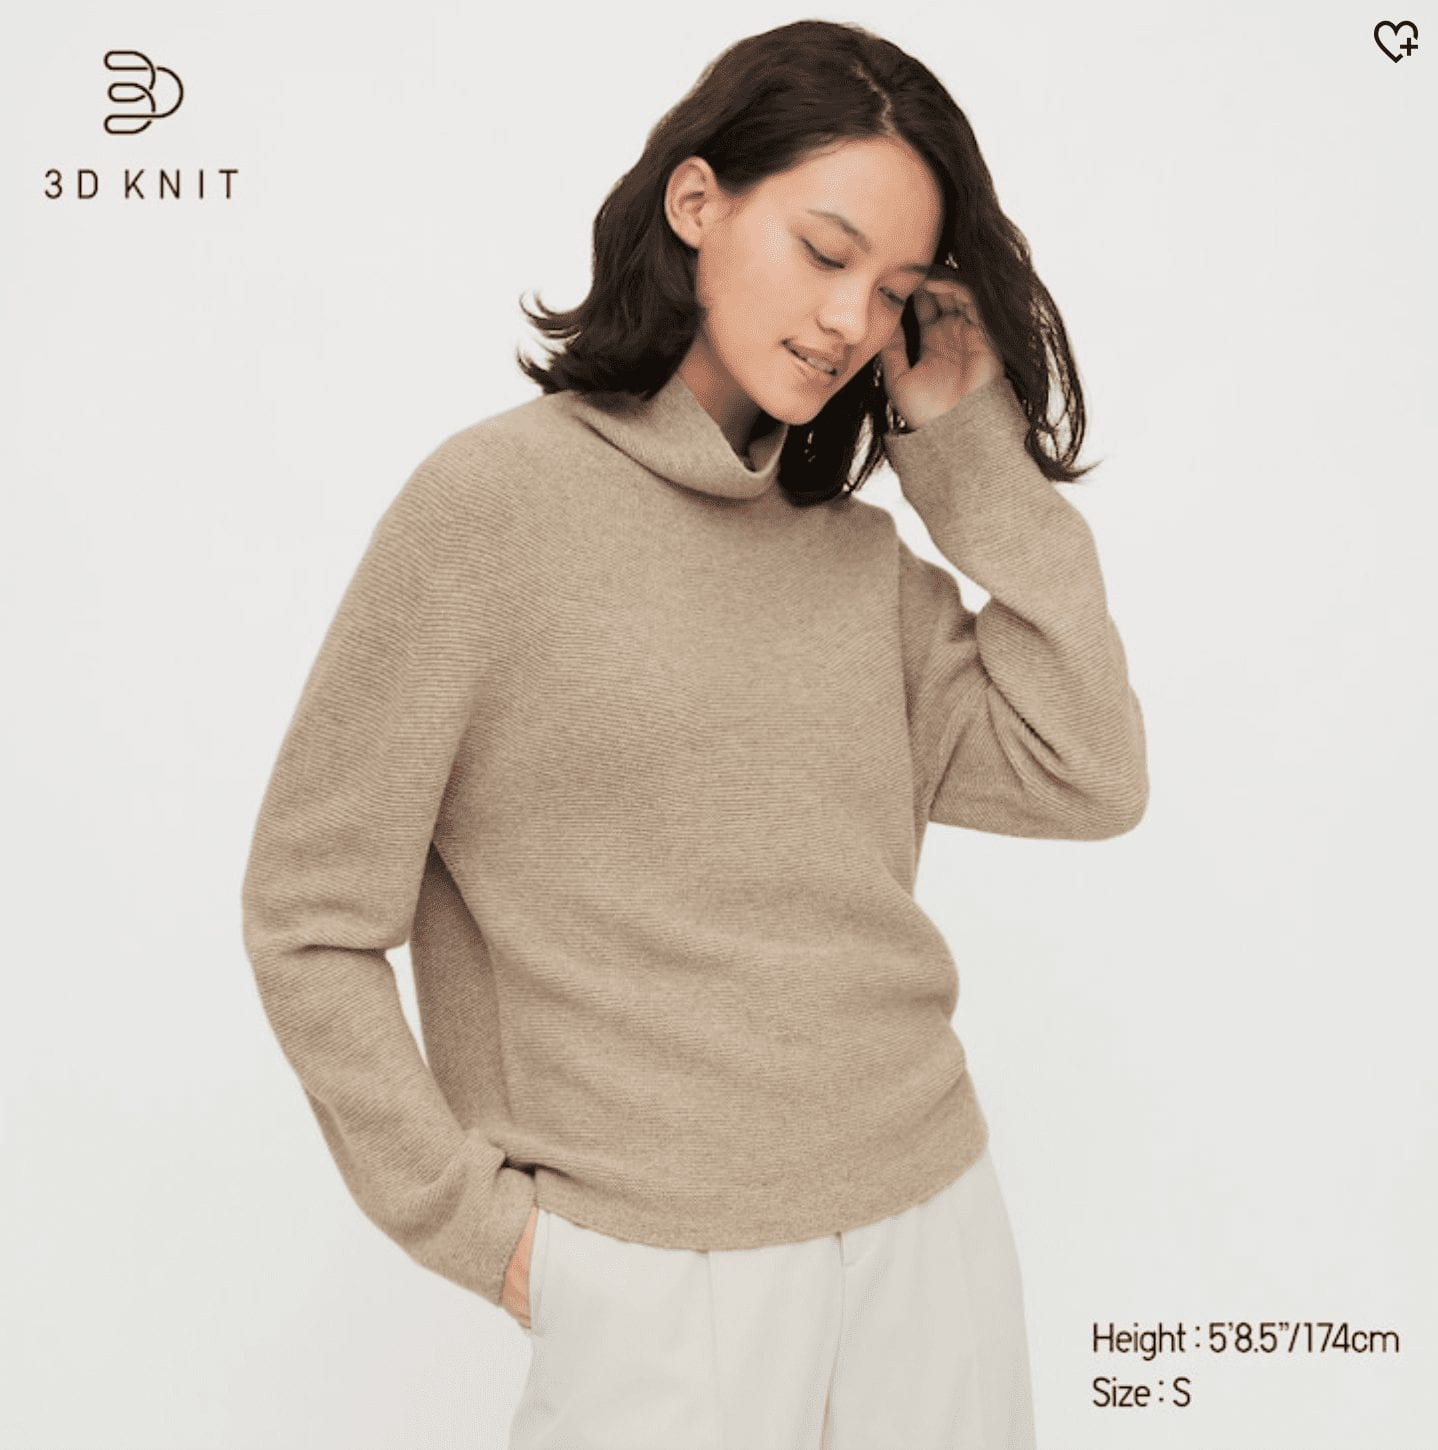 UNIQLO: End of Year Sale!